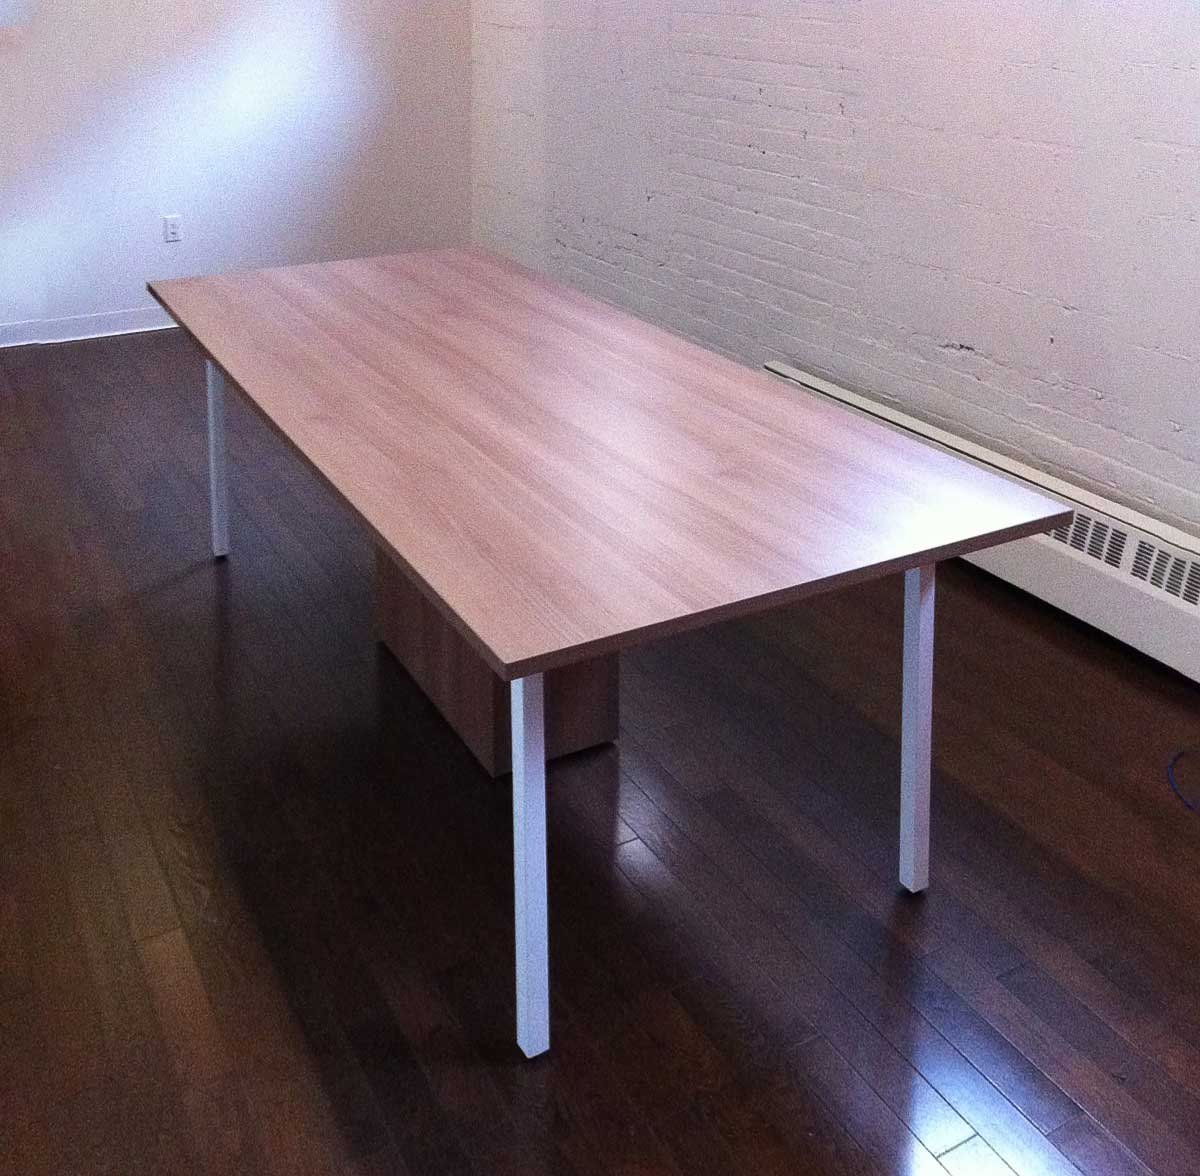 Meeting Table with white Legs in an empty room